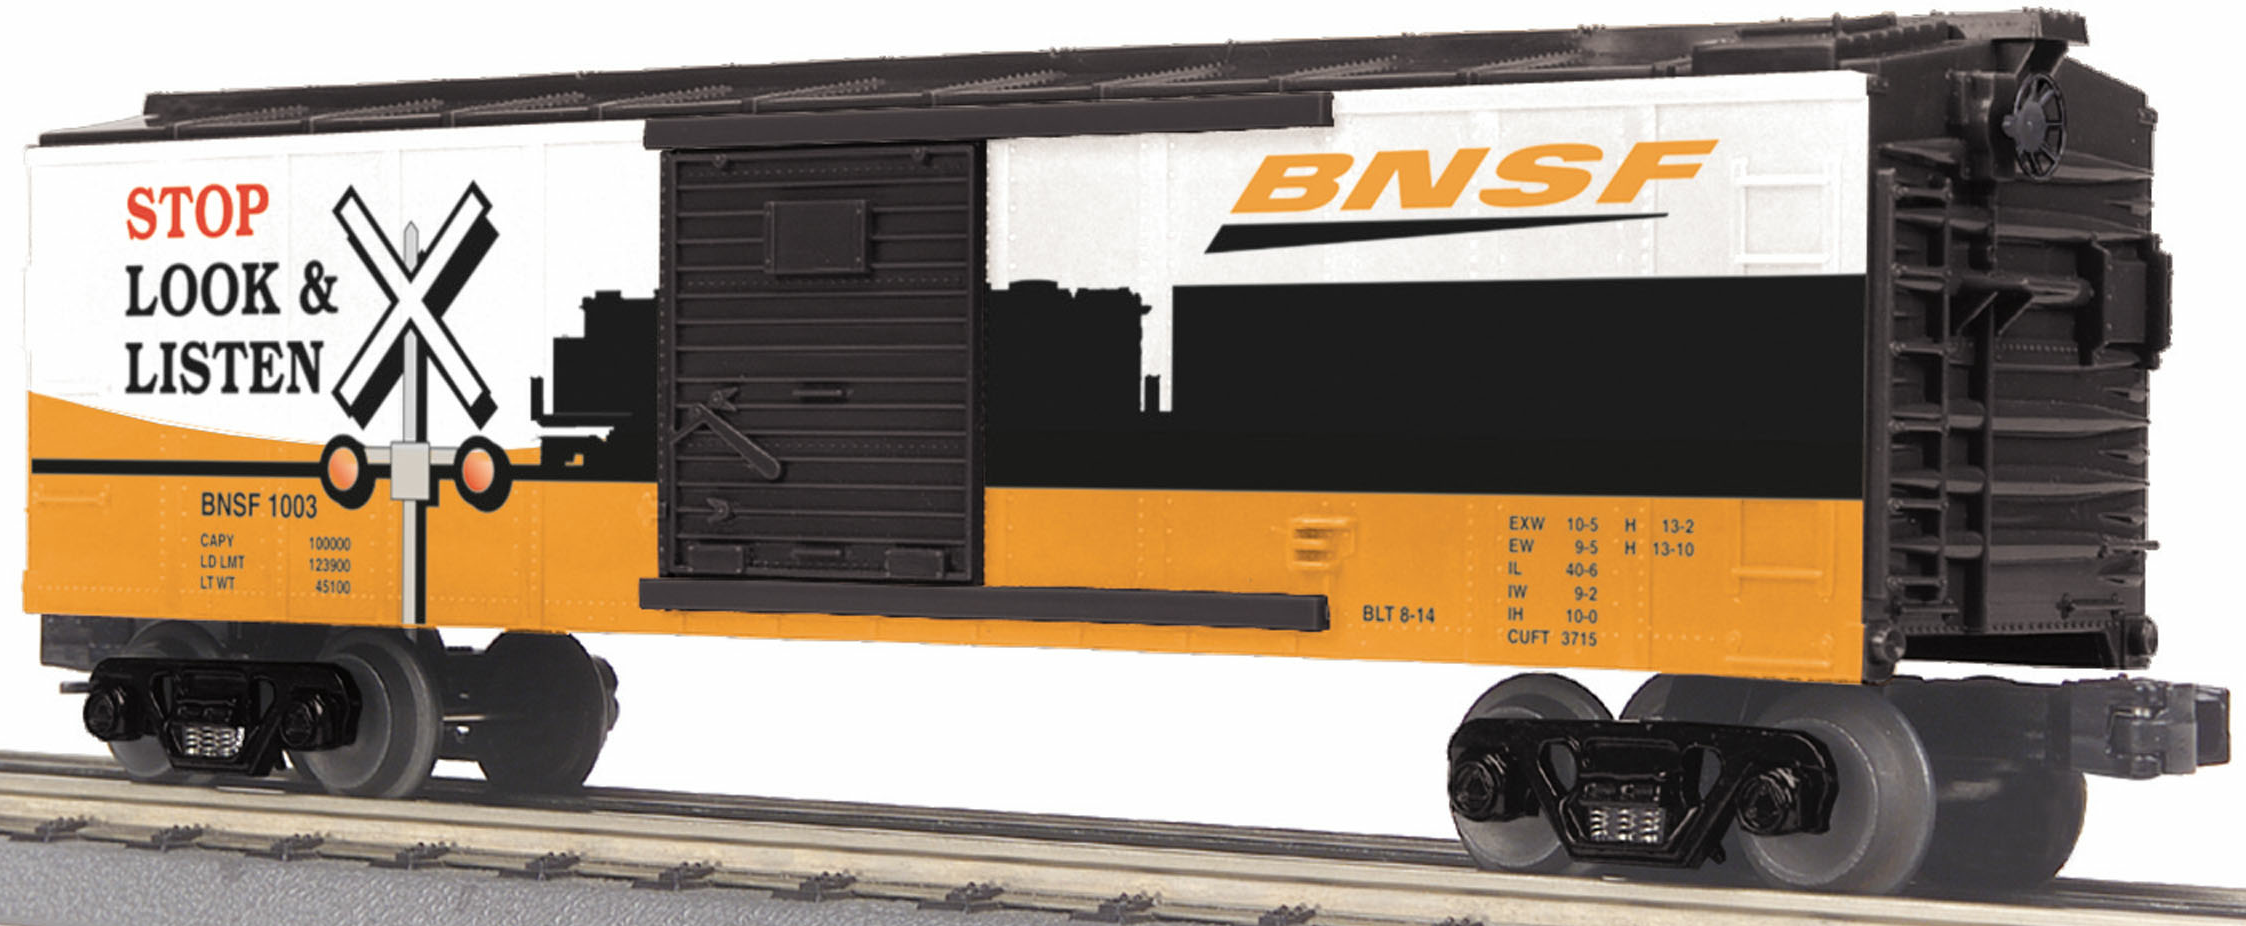 BNSF Box Car w/Blinking LEDs image